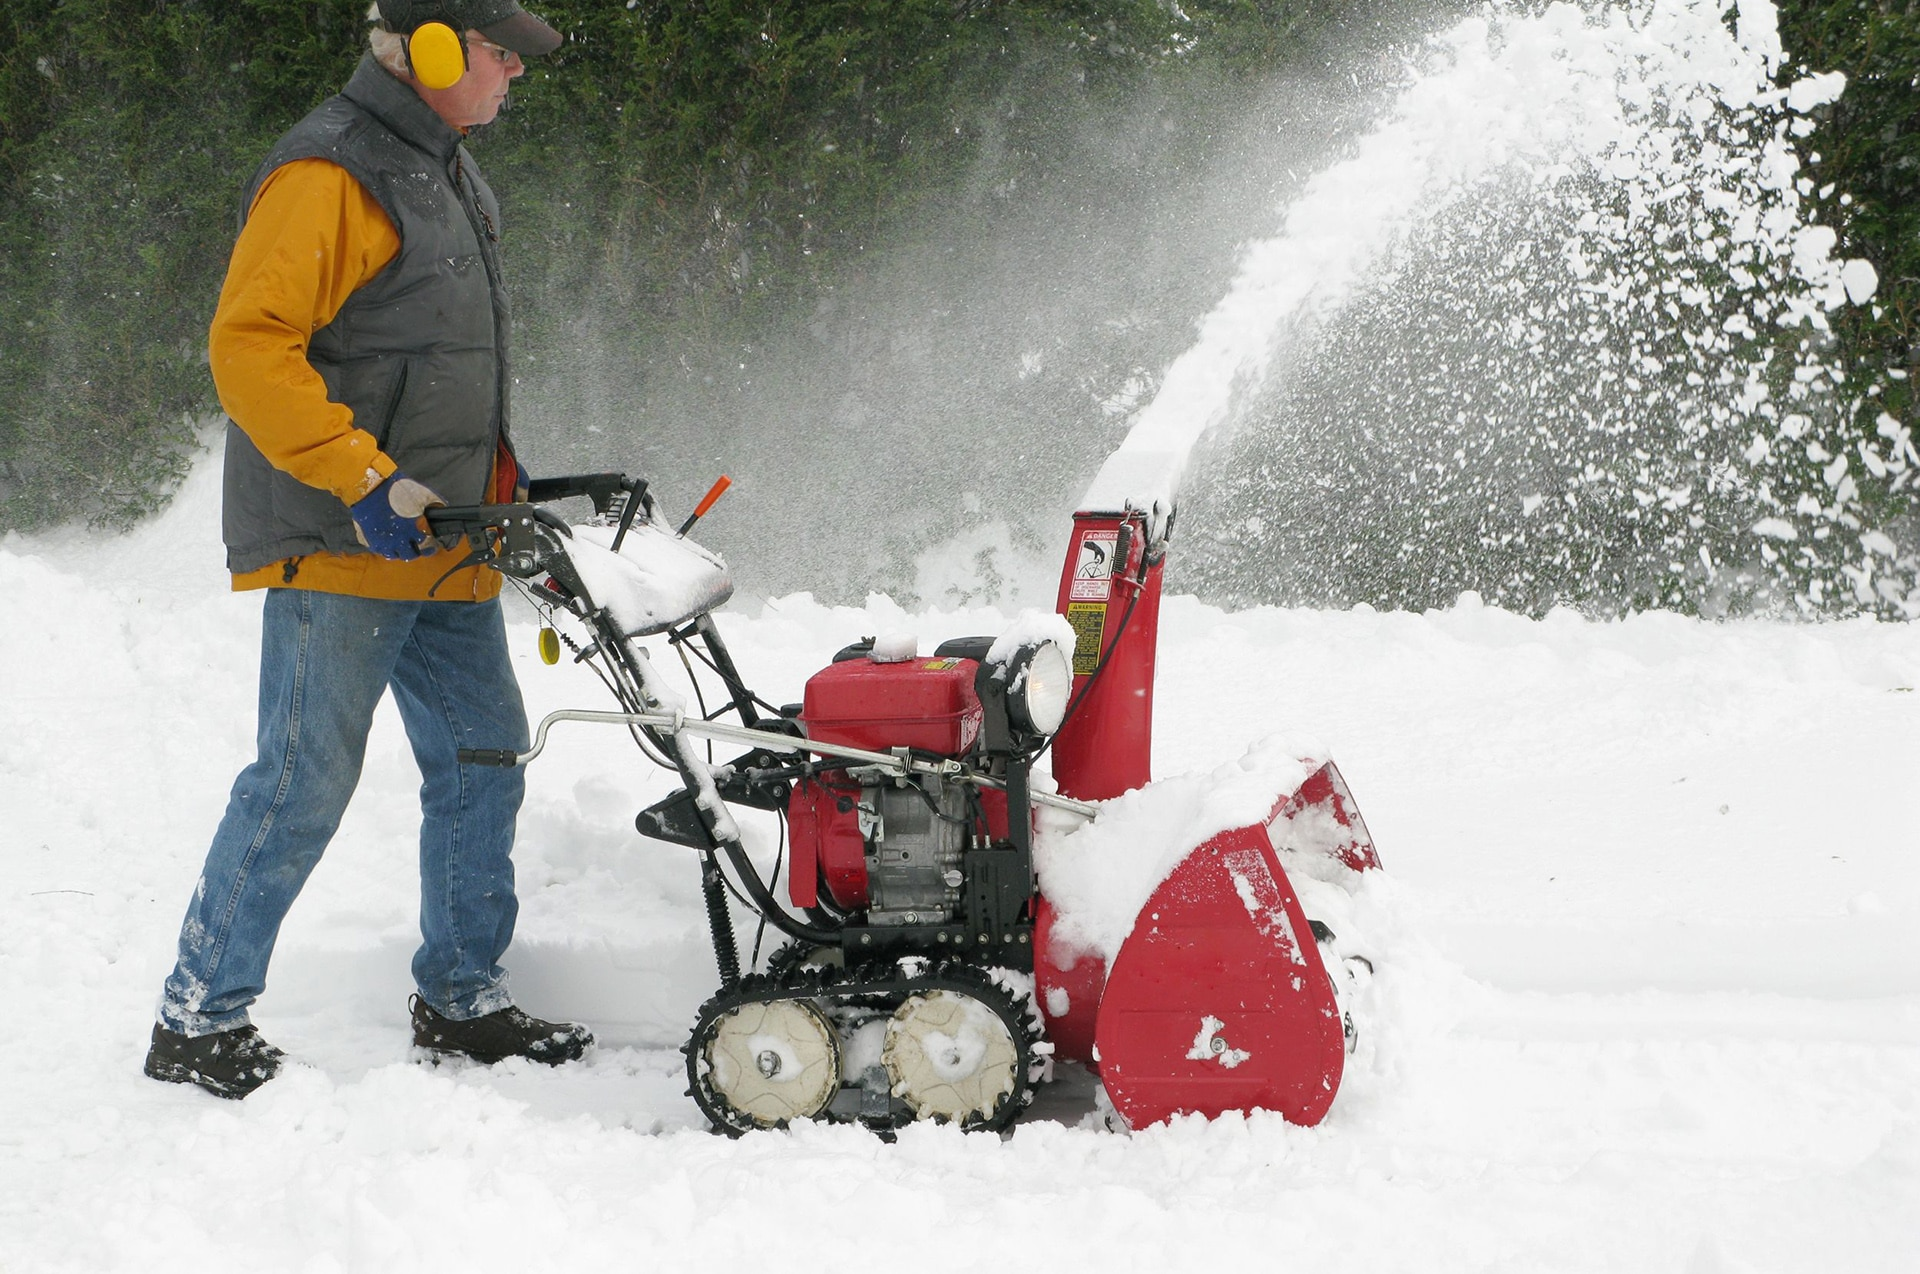 How Does a Snowblower Work? - Explained in Detail